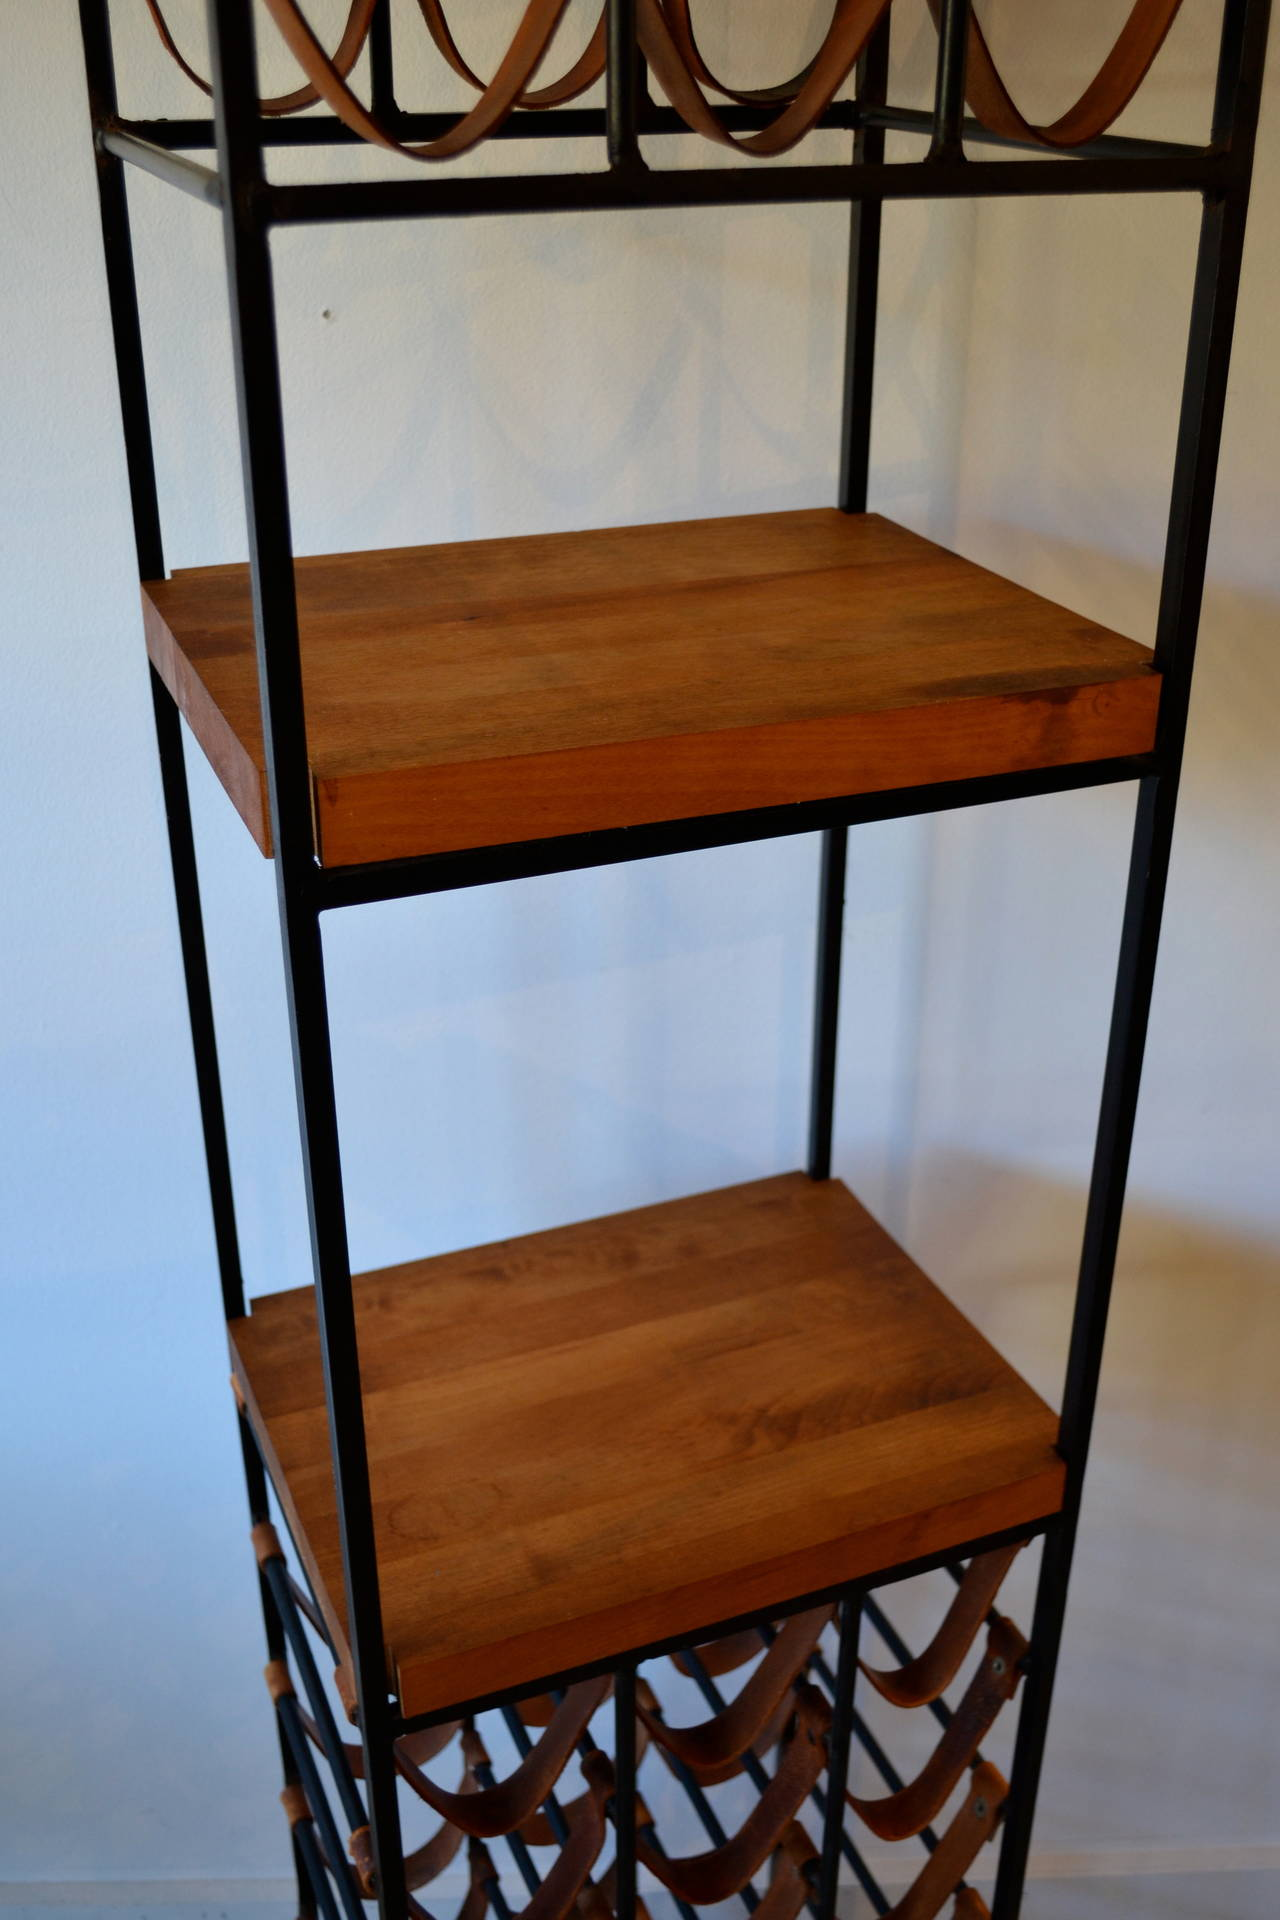 Mid-Century Modern Pair of Wrought Iron and Butcher Block Wine Racks by Arthur Umanoff, 1950s For Sale